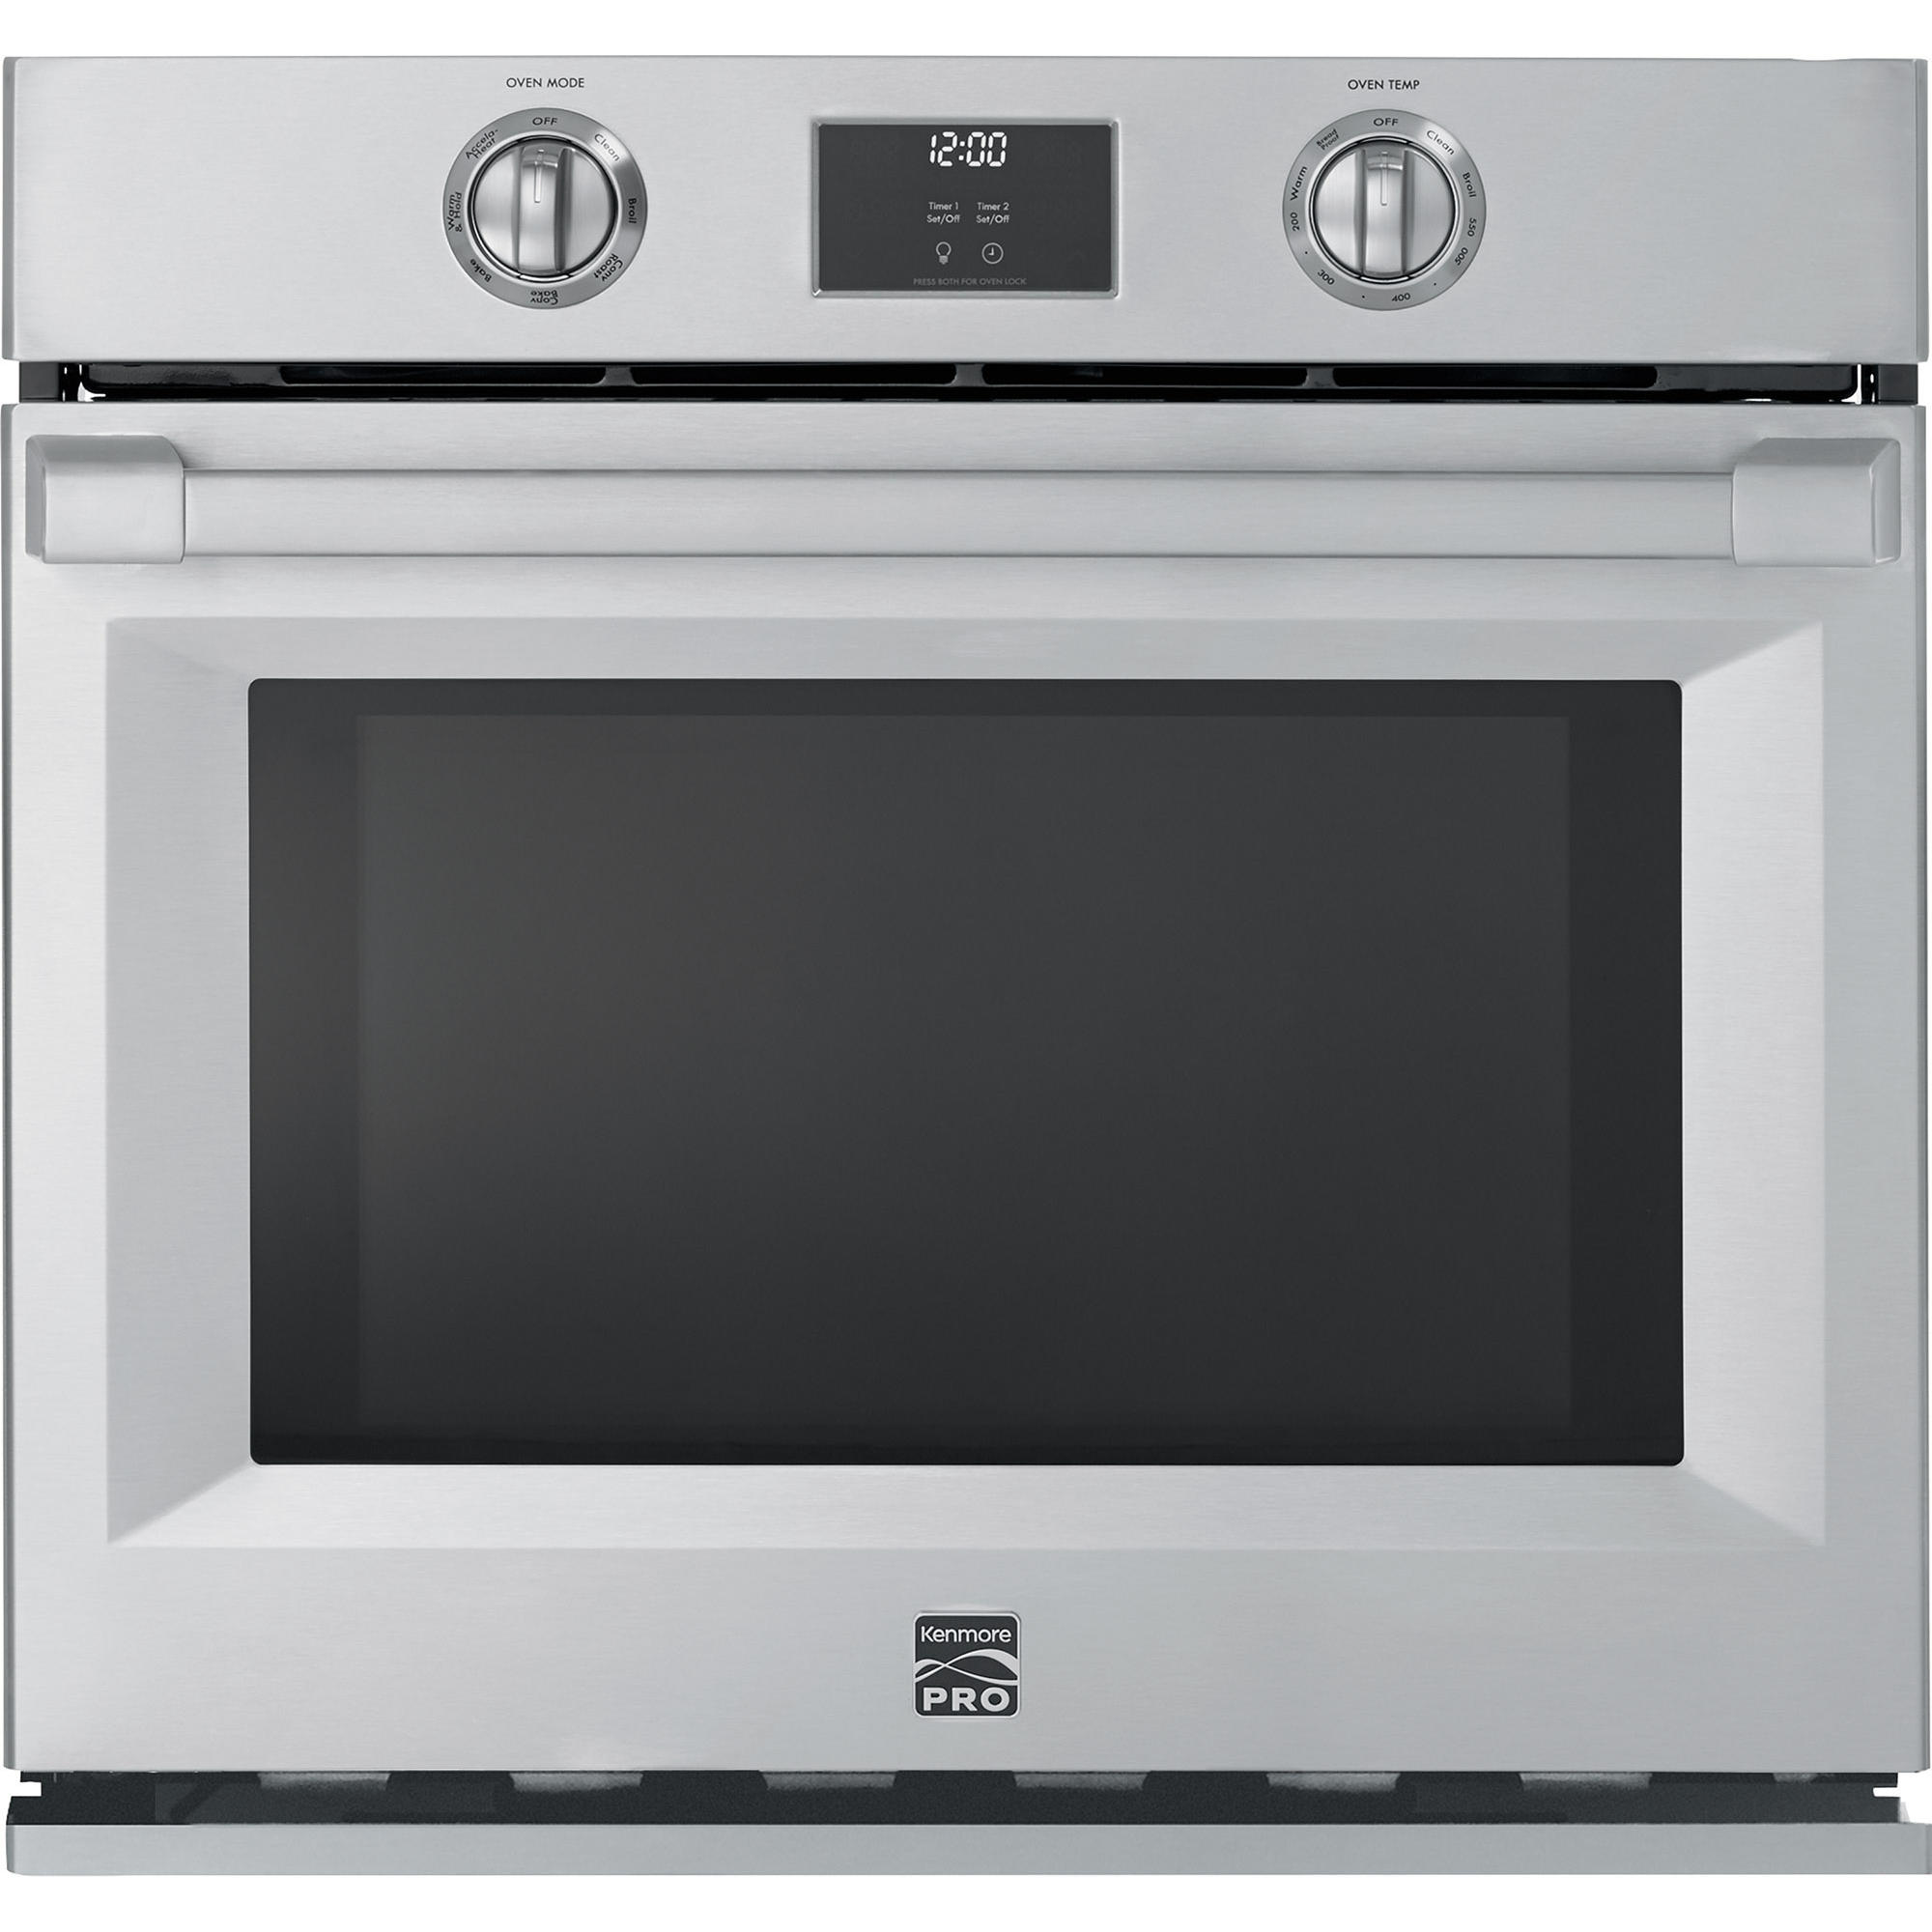 41153-30-Electric-Self-Clean-Single-Wall-Oven-Stainless-Steel